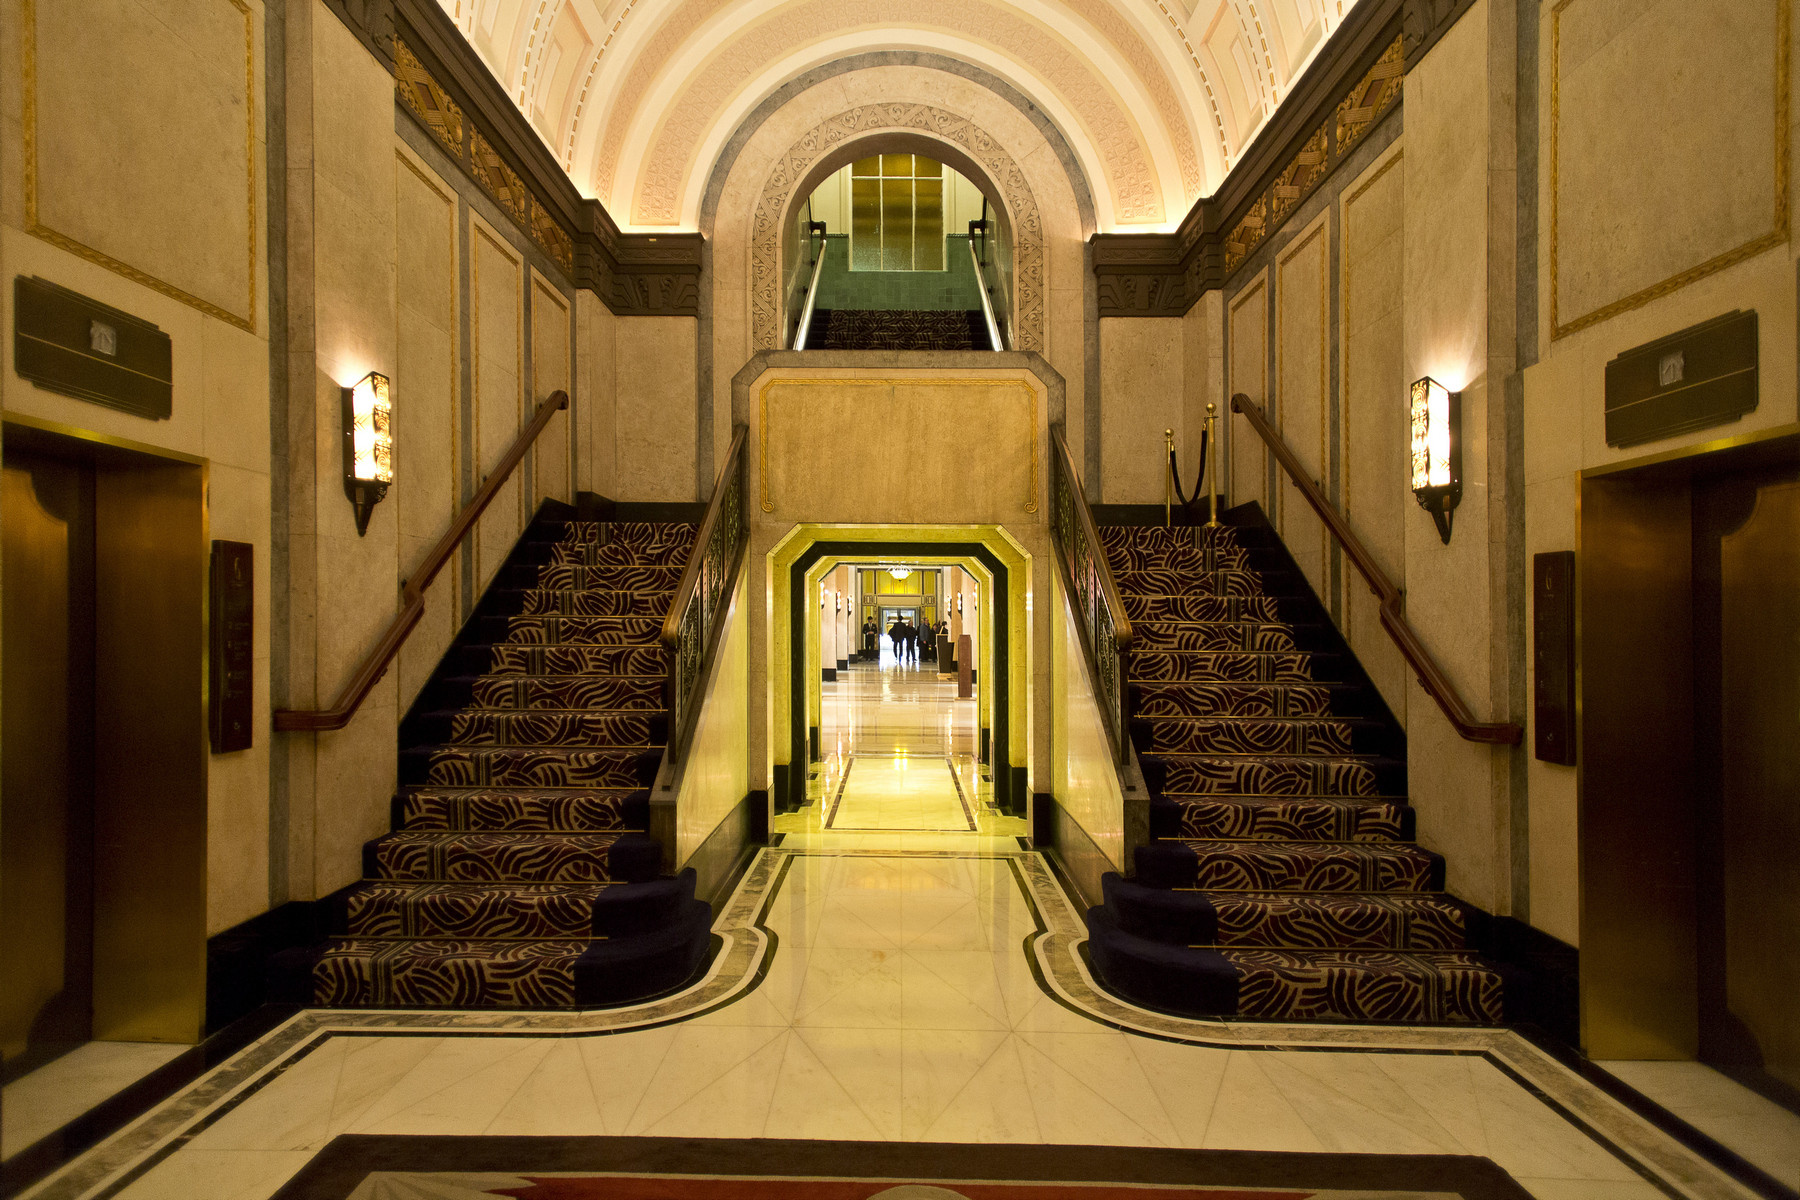 30 Iconic Art Deco Buildings That Will Inspire Your Aesthetic